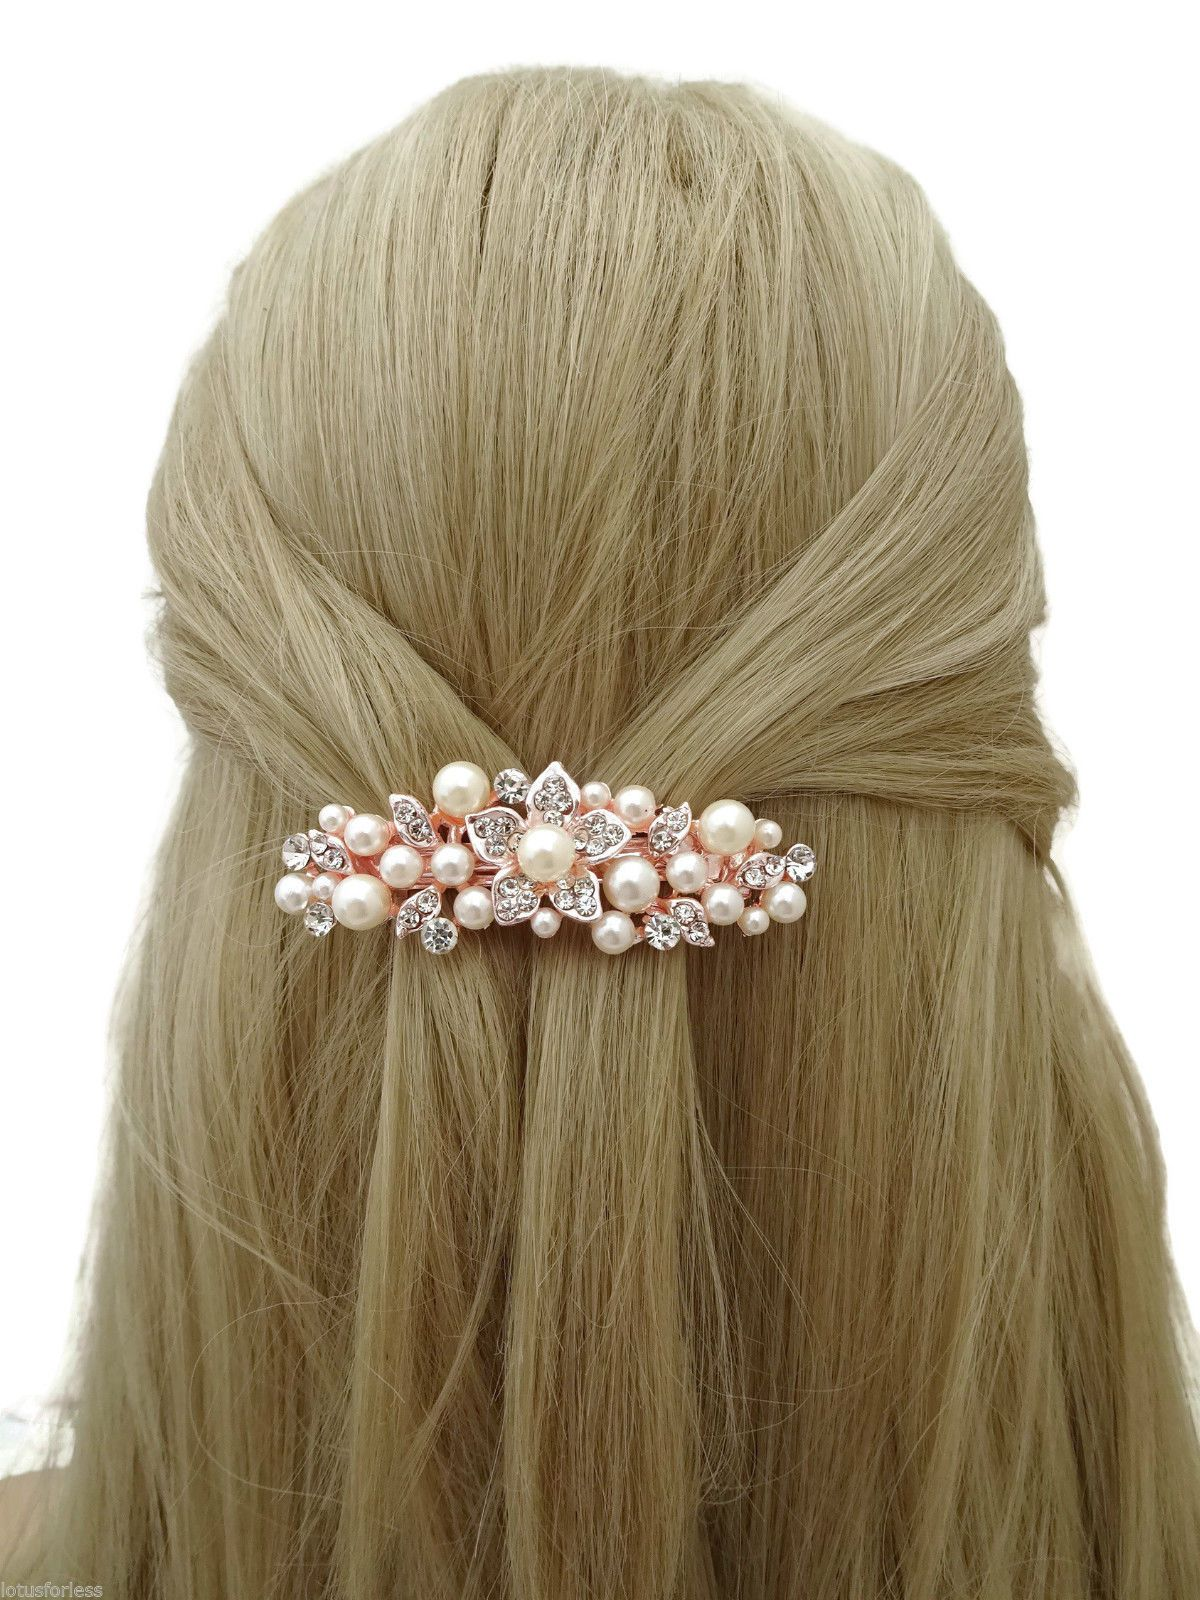 Details about beautiful diamante barrette hair clip grip in rose